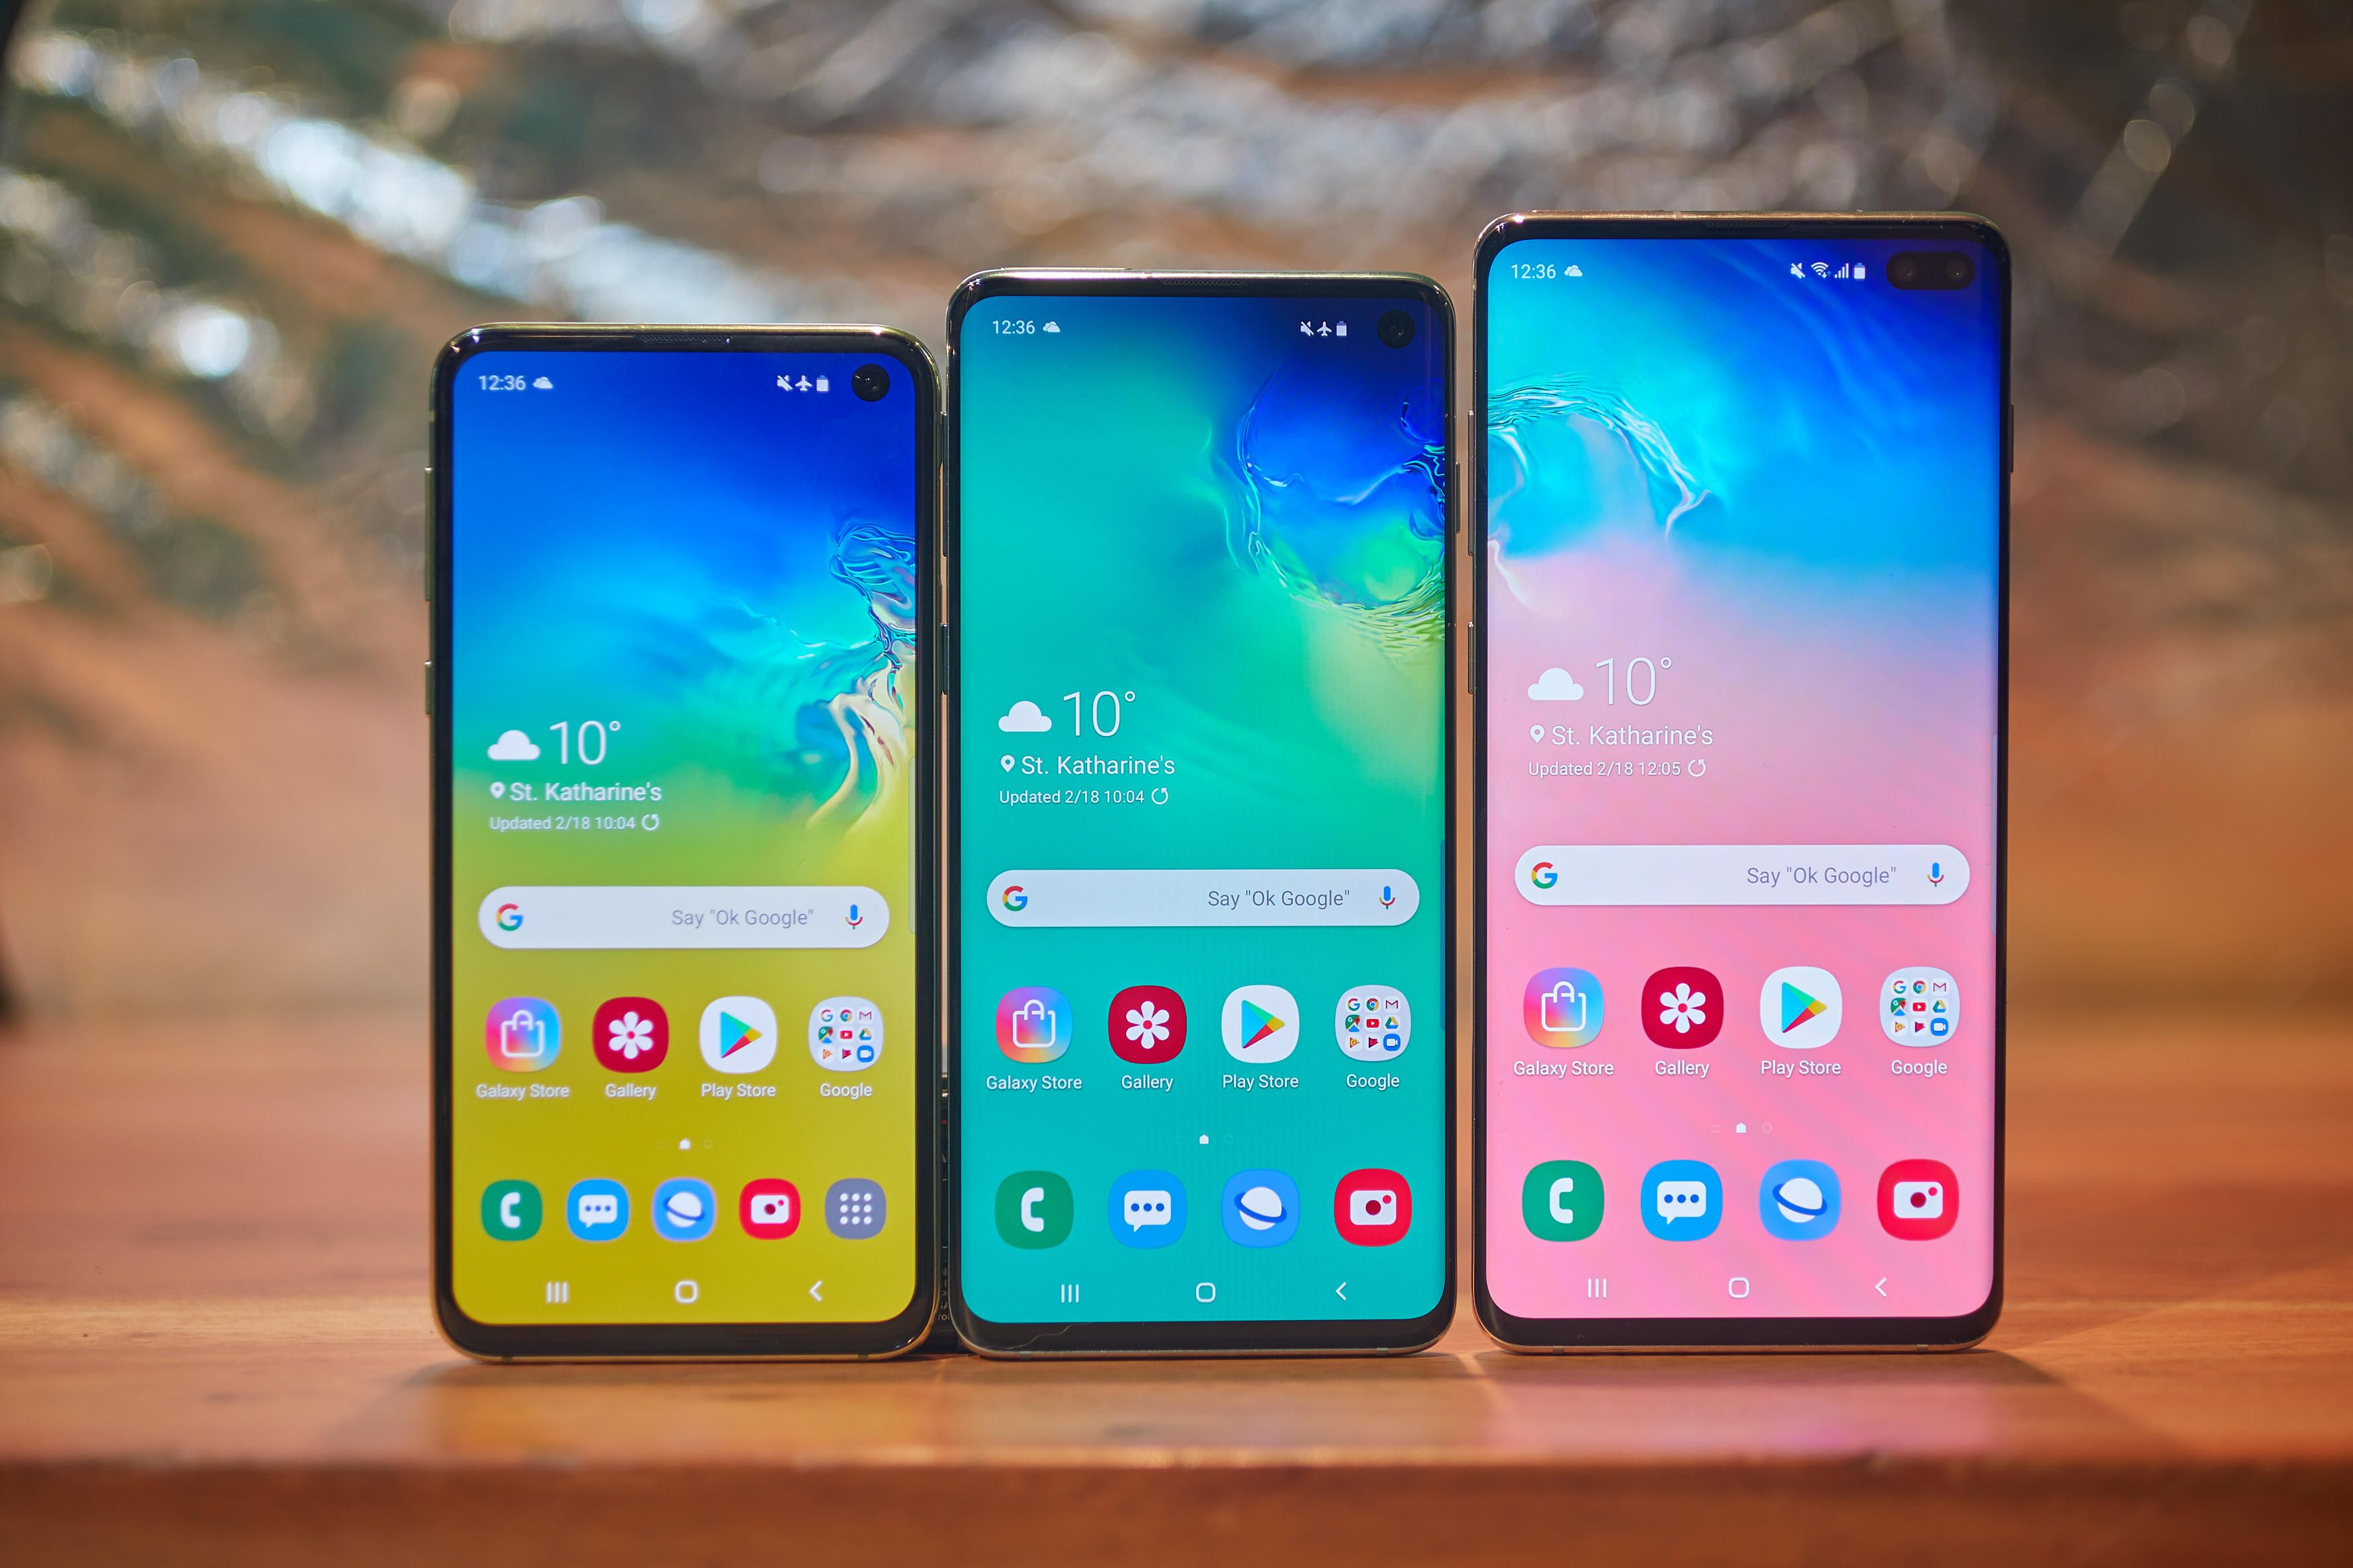 Galaxy S10 Price in India